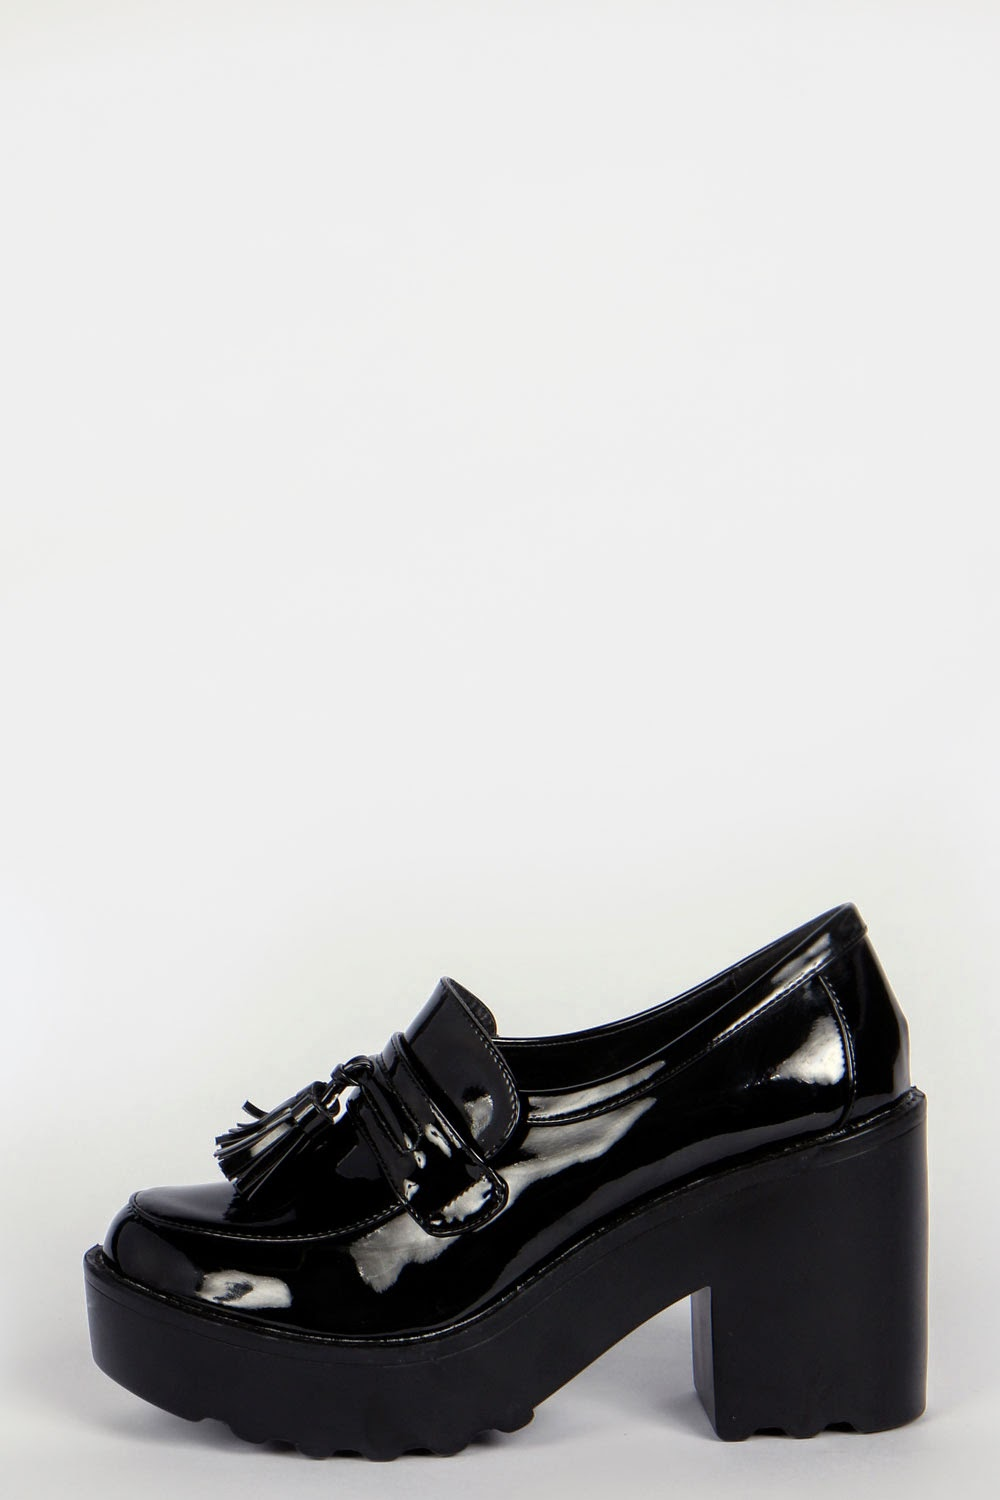 Shoes For Girls 2014-15